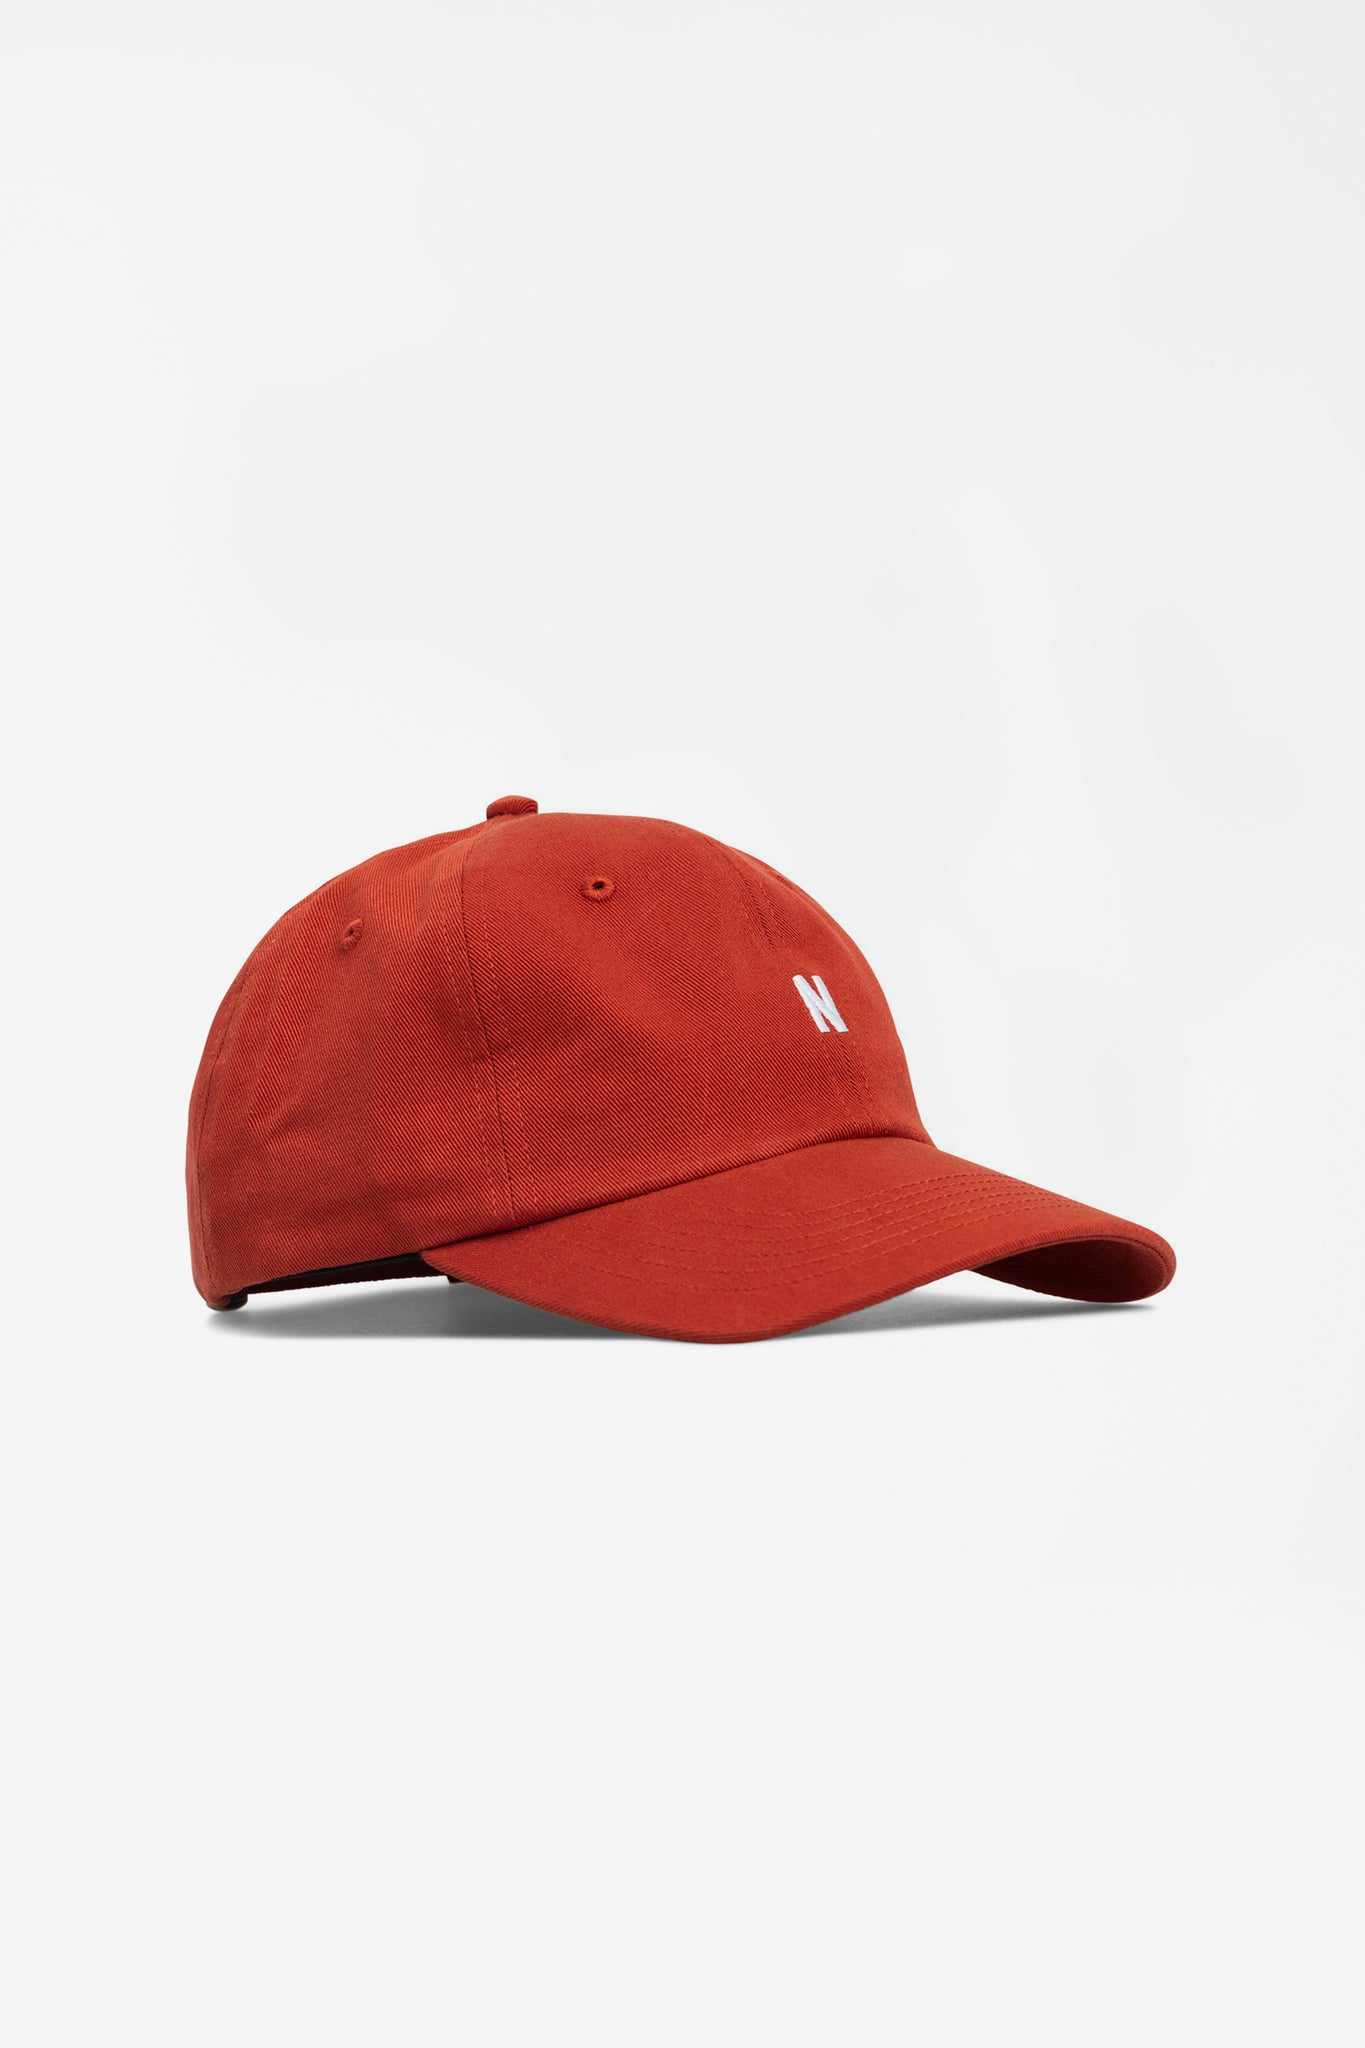 Twill sports cap industrial orange